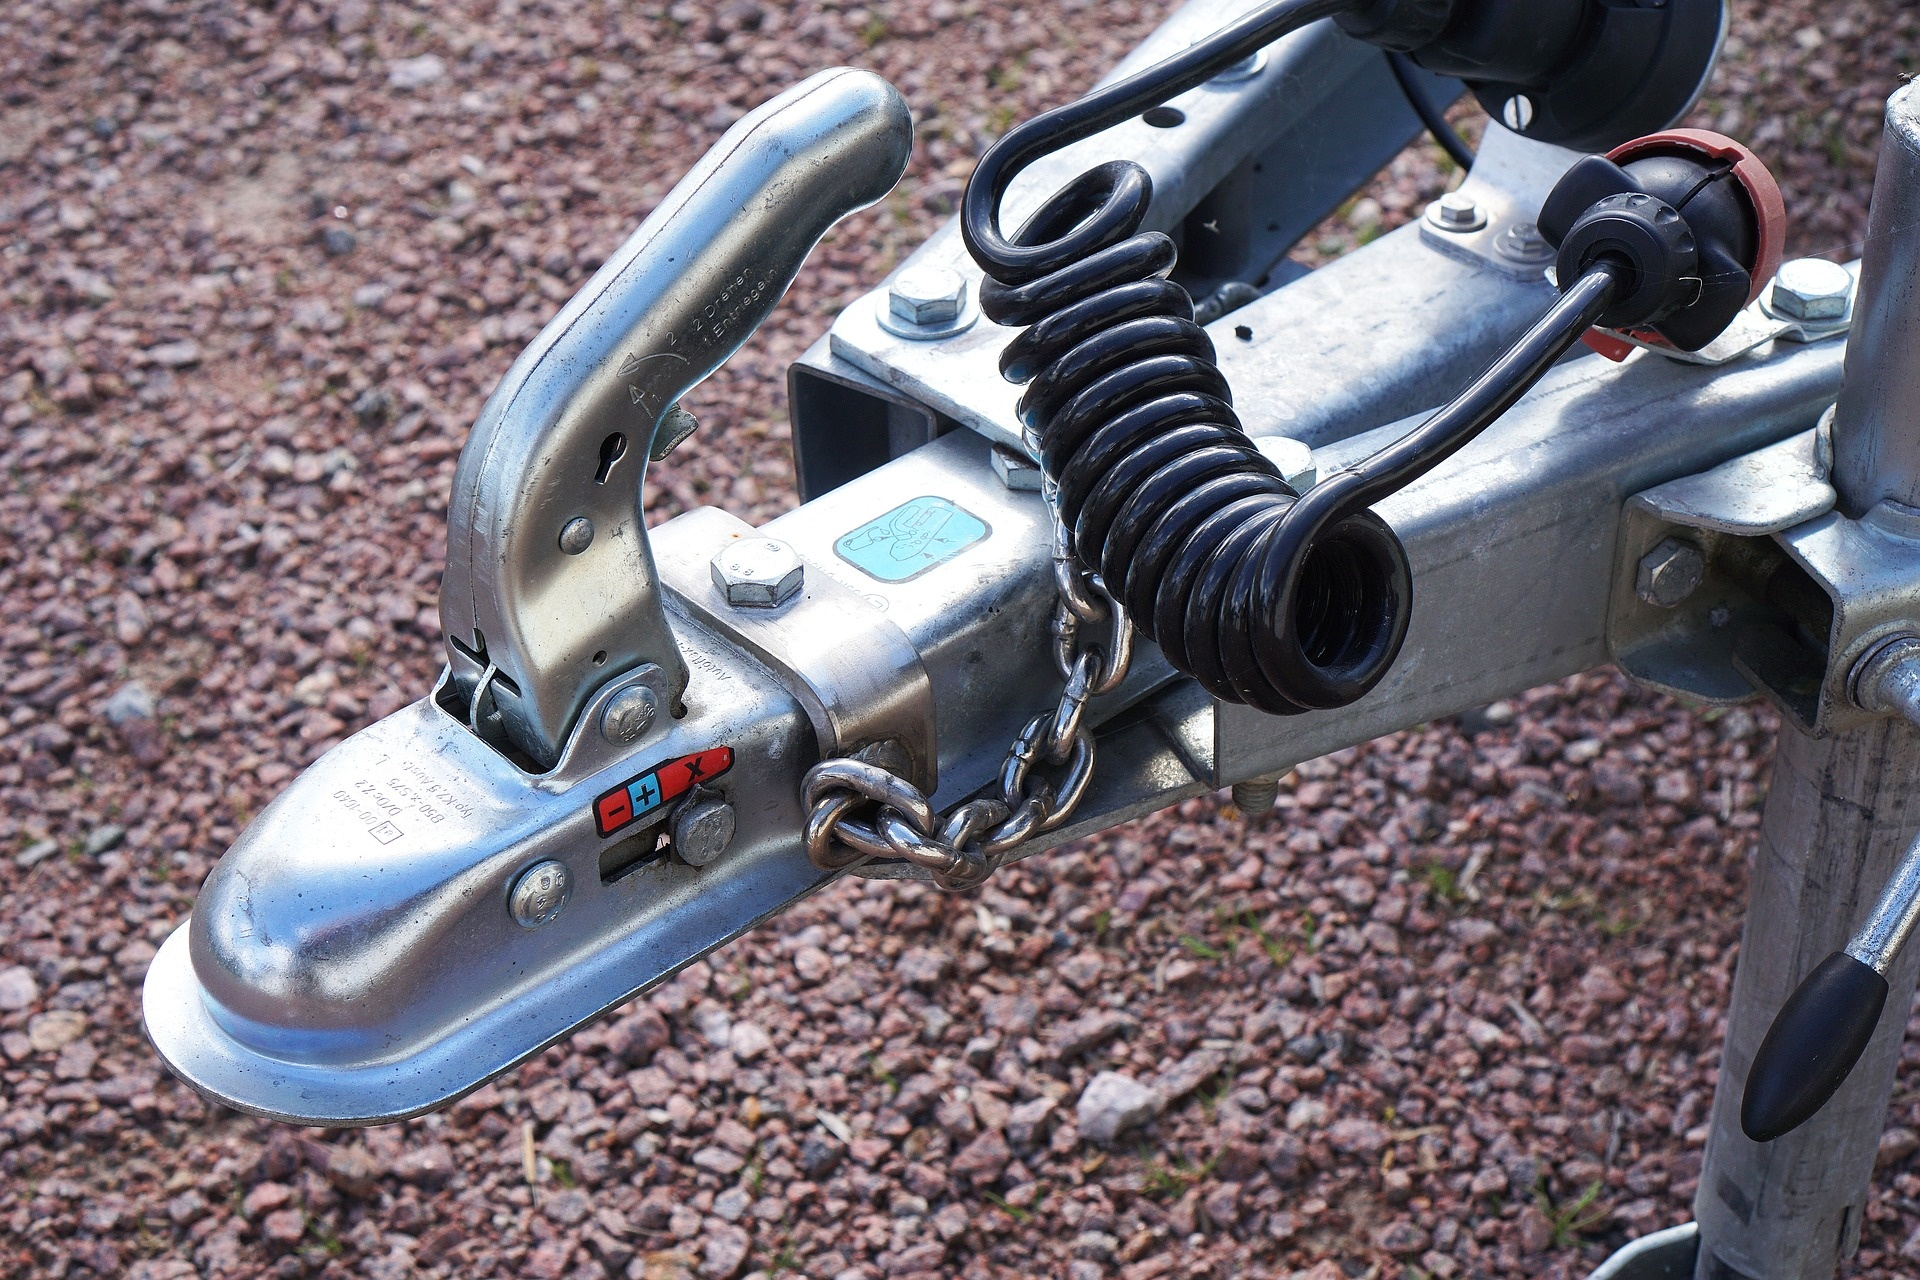 Trailer Parts, Caravan and Towing Accessory